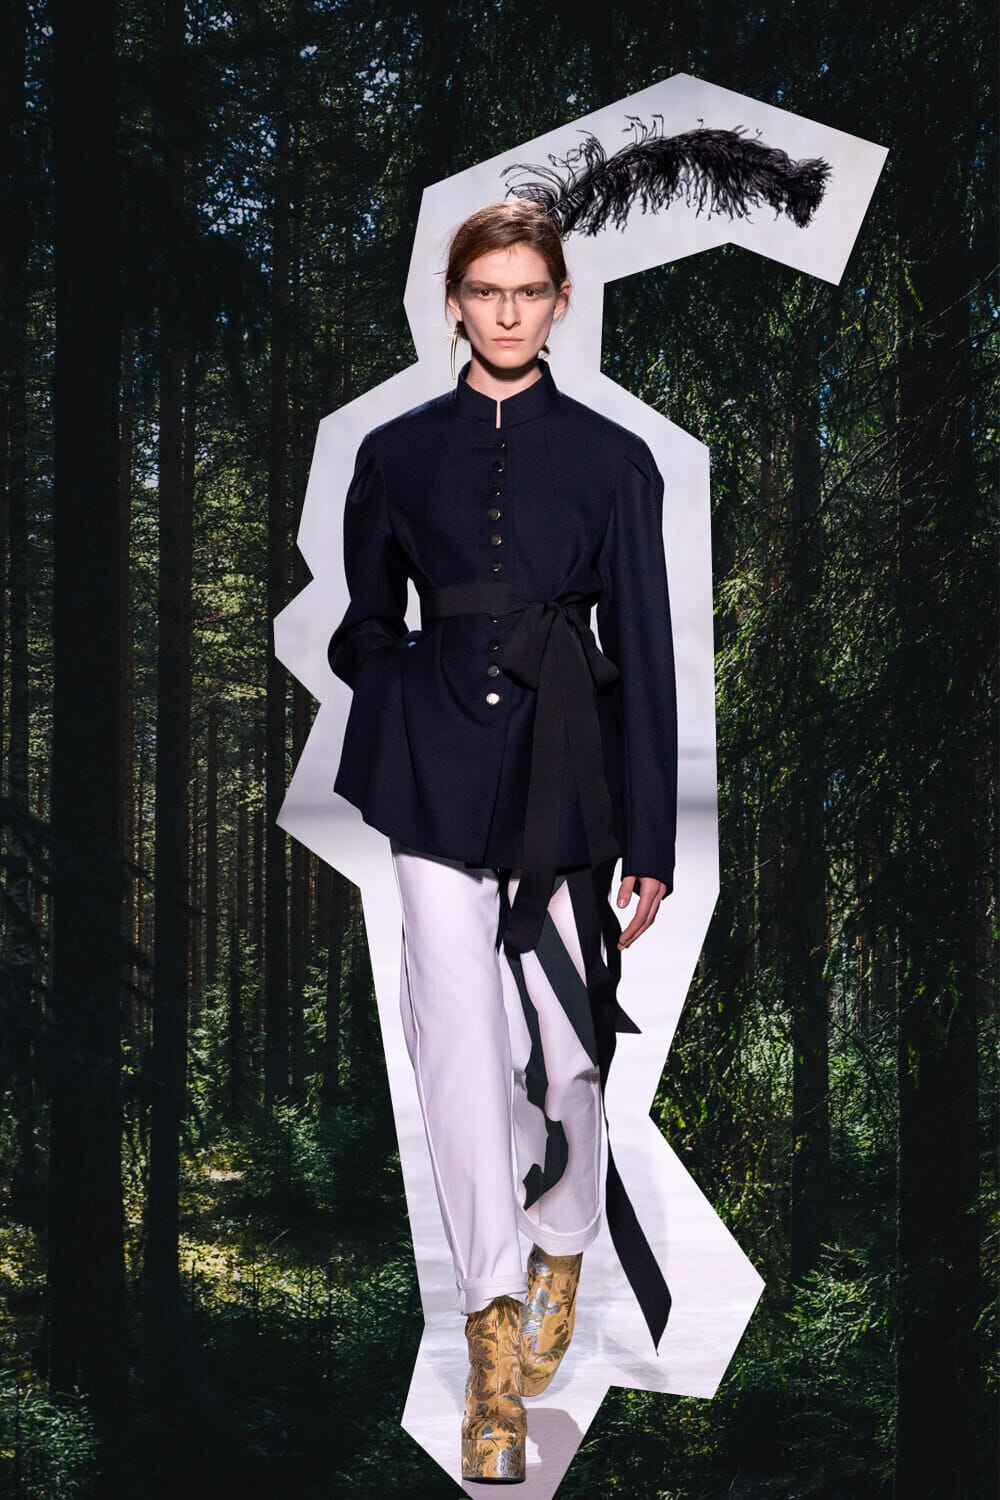 Dries Van Noten minimalist fashion collection